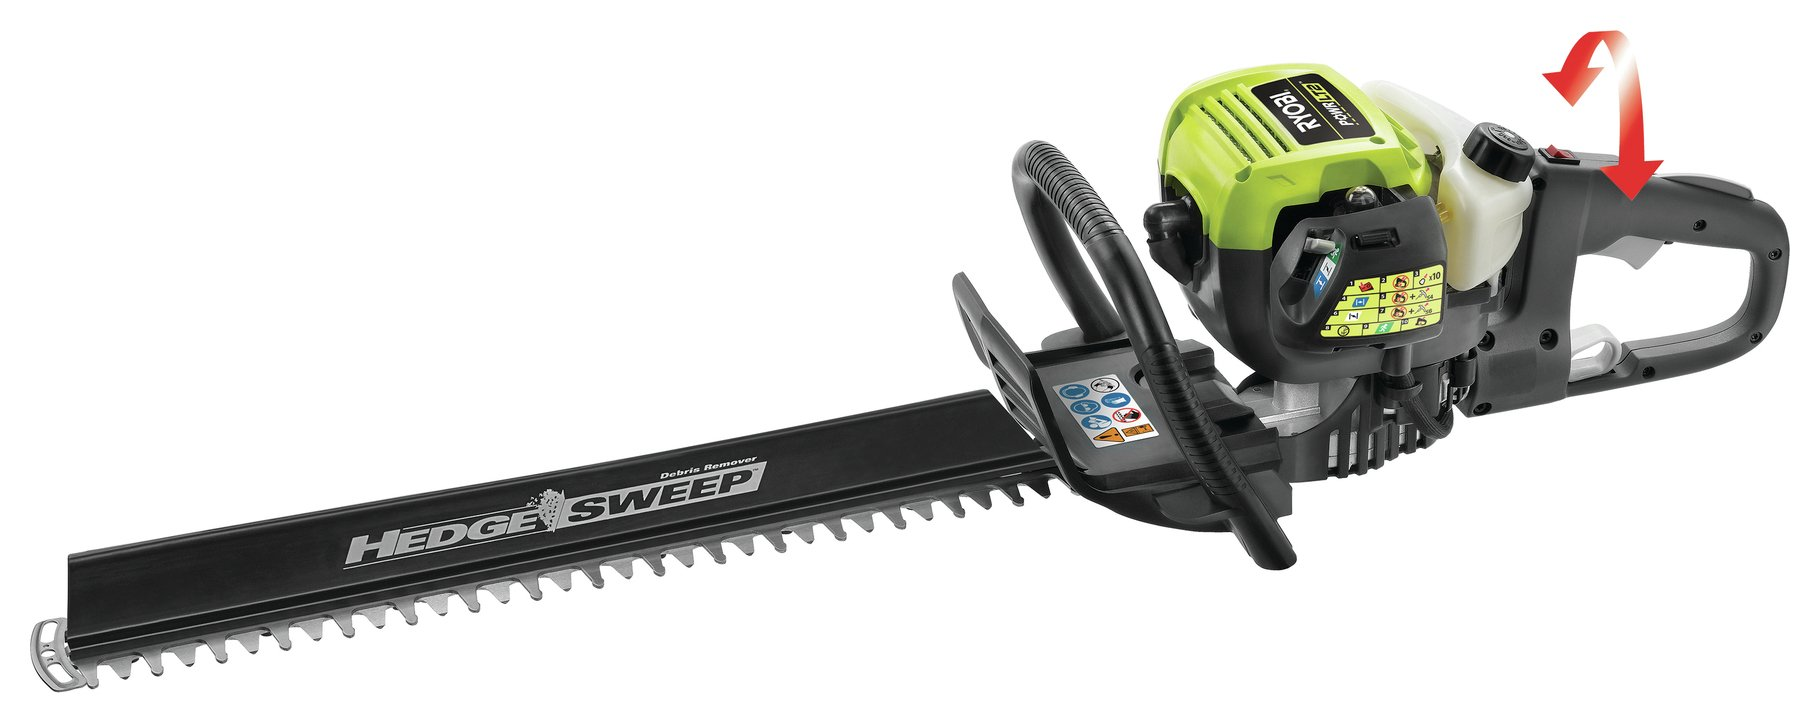 ryobi rht6560rl corded hedge trimmer 650w. Black Bedroom Furniture Sets. Home Design Ideas